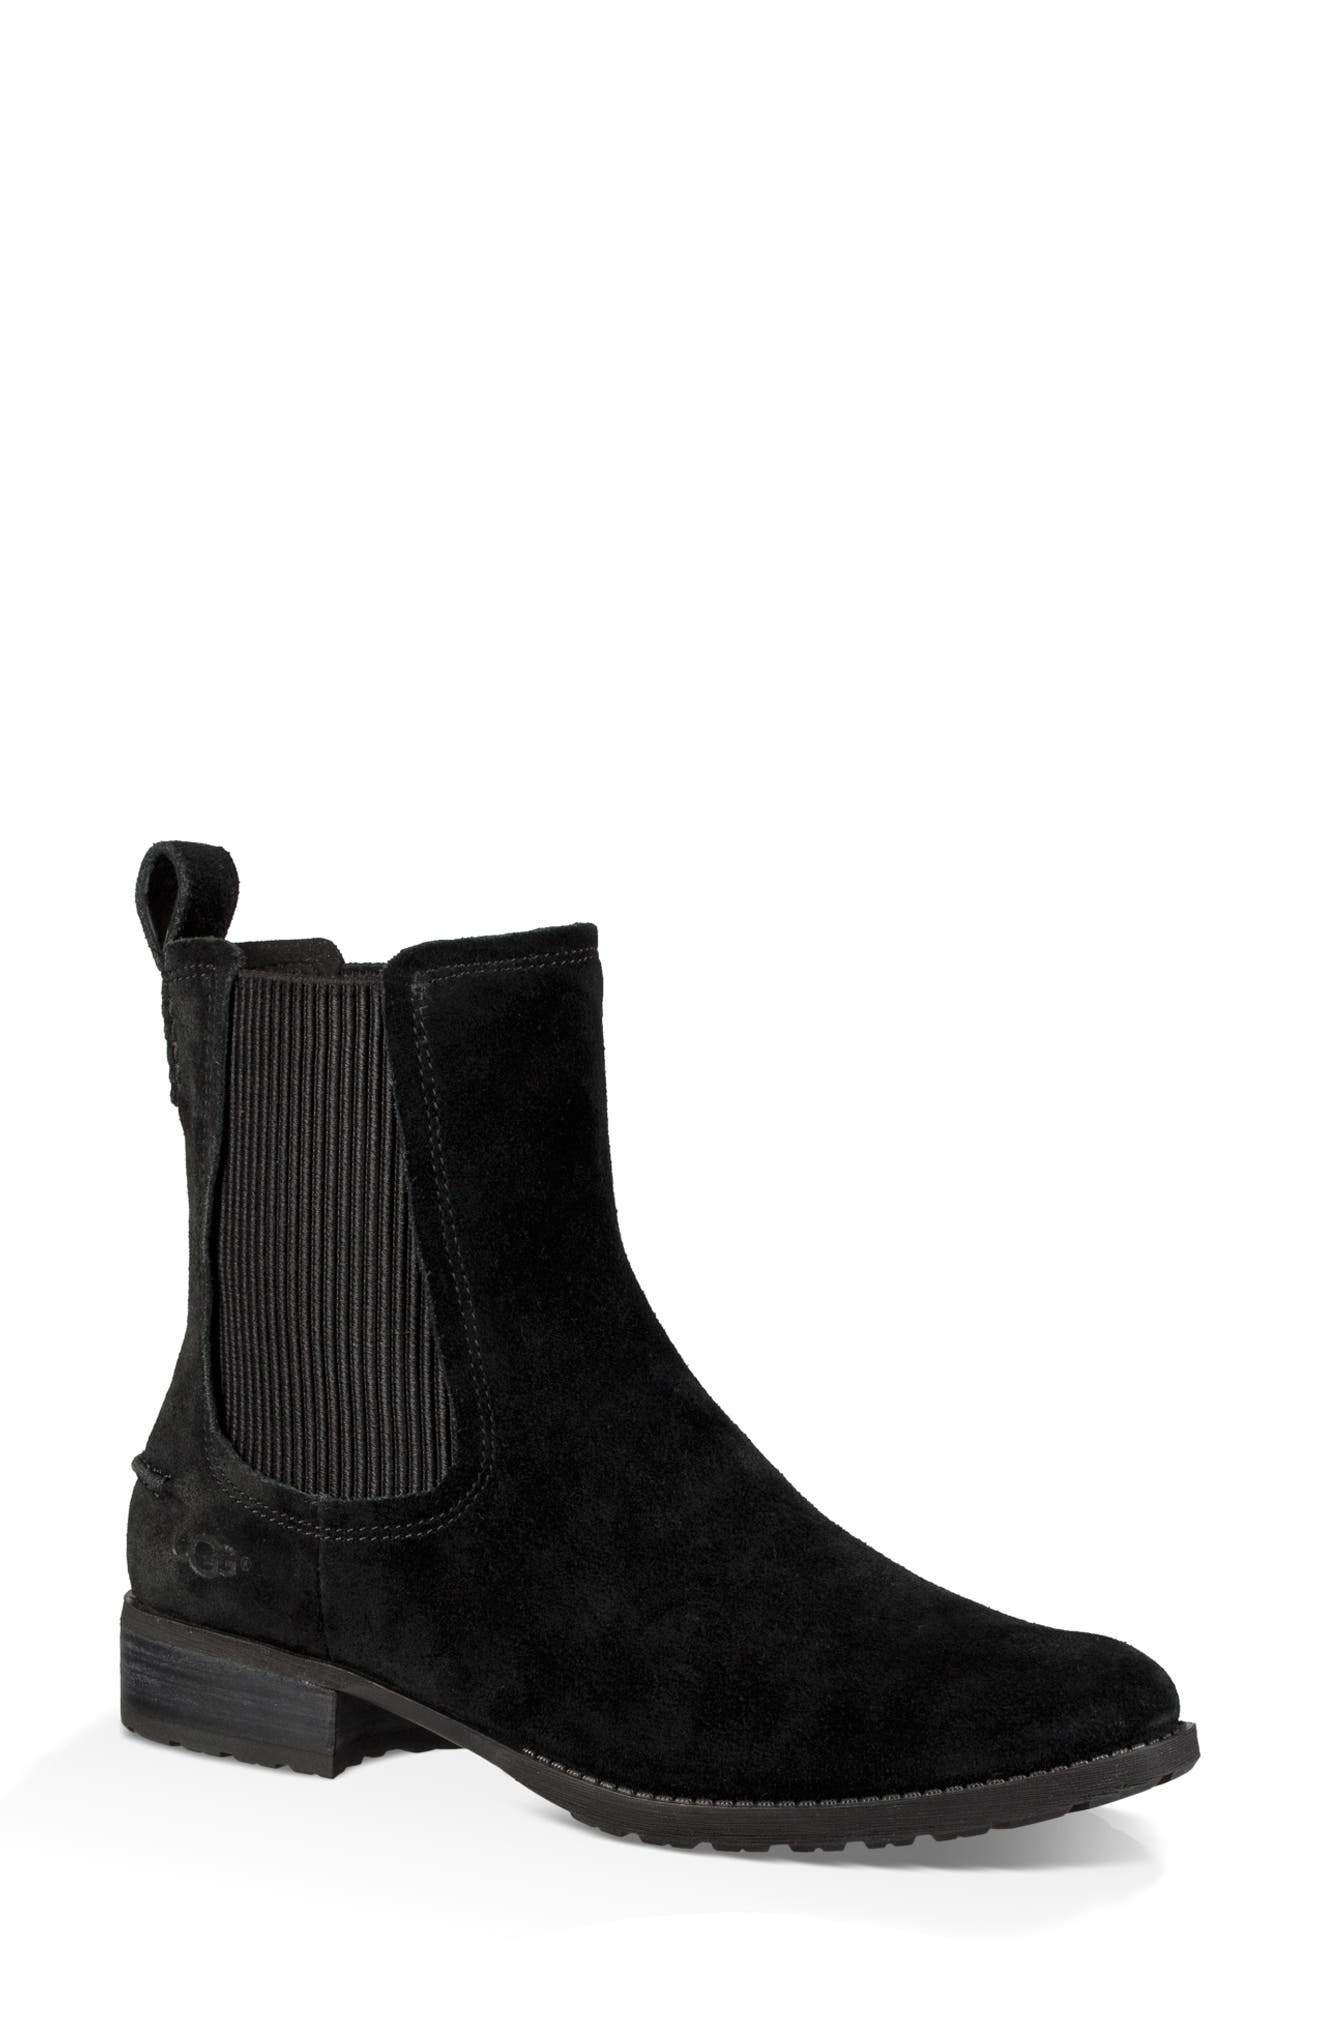 Hillhurst Chelsea Boot,                             Main thumbnail 1, color,                             BLACK SUEDE